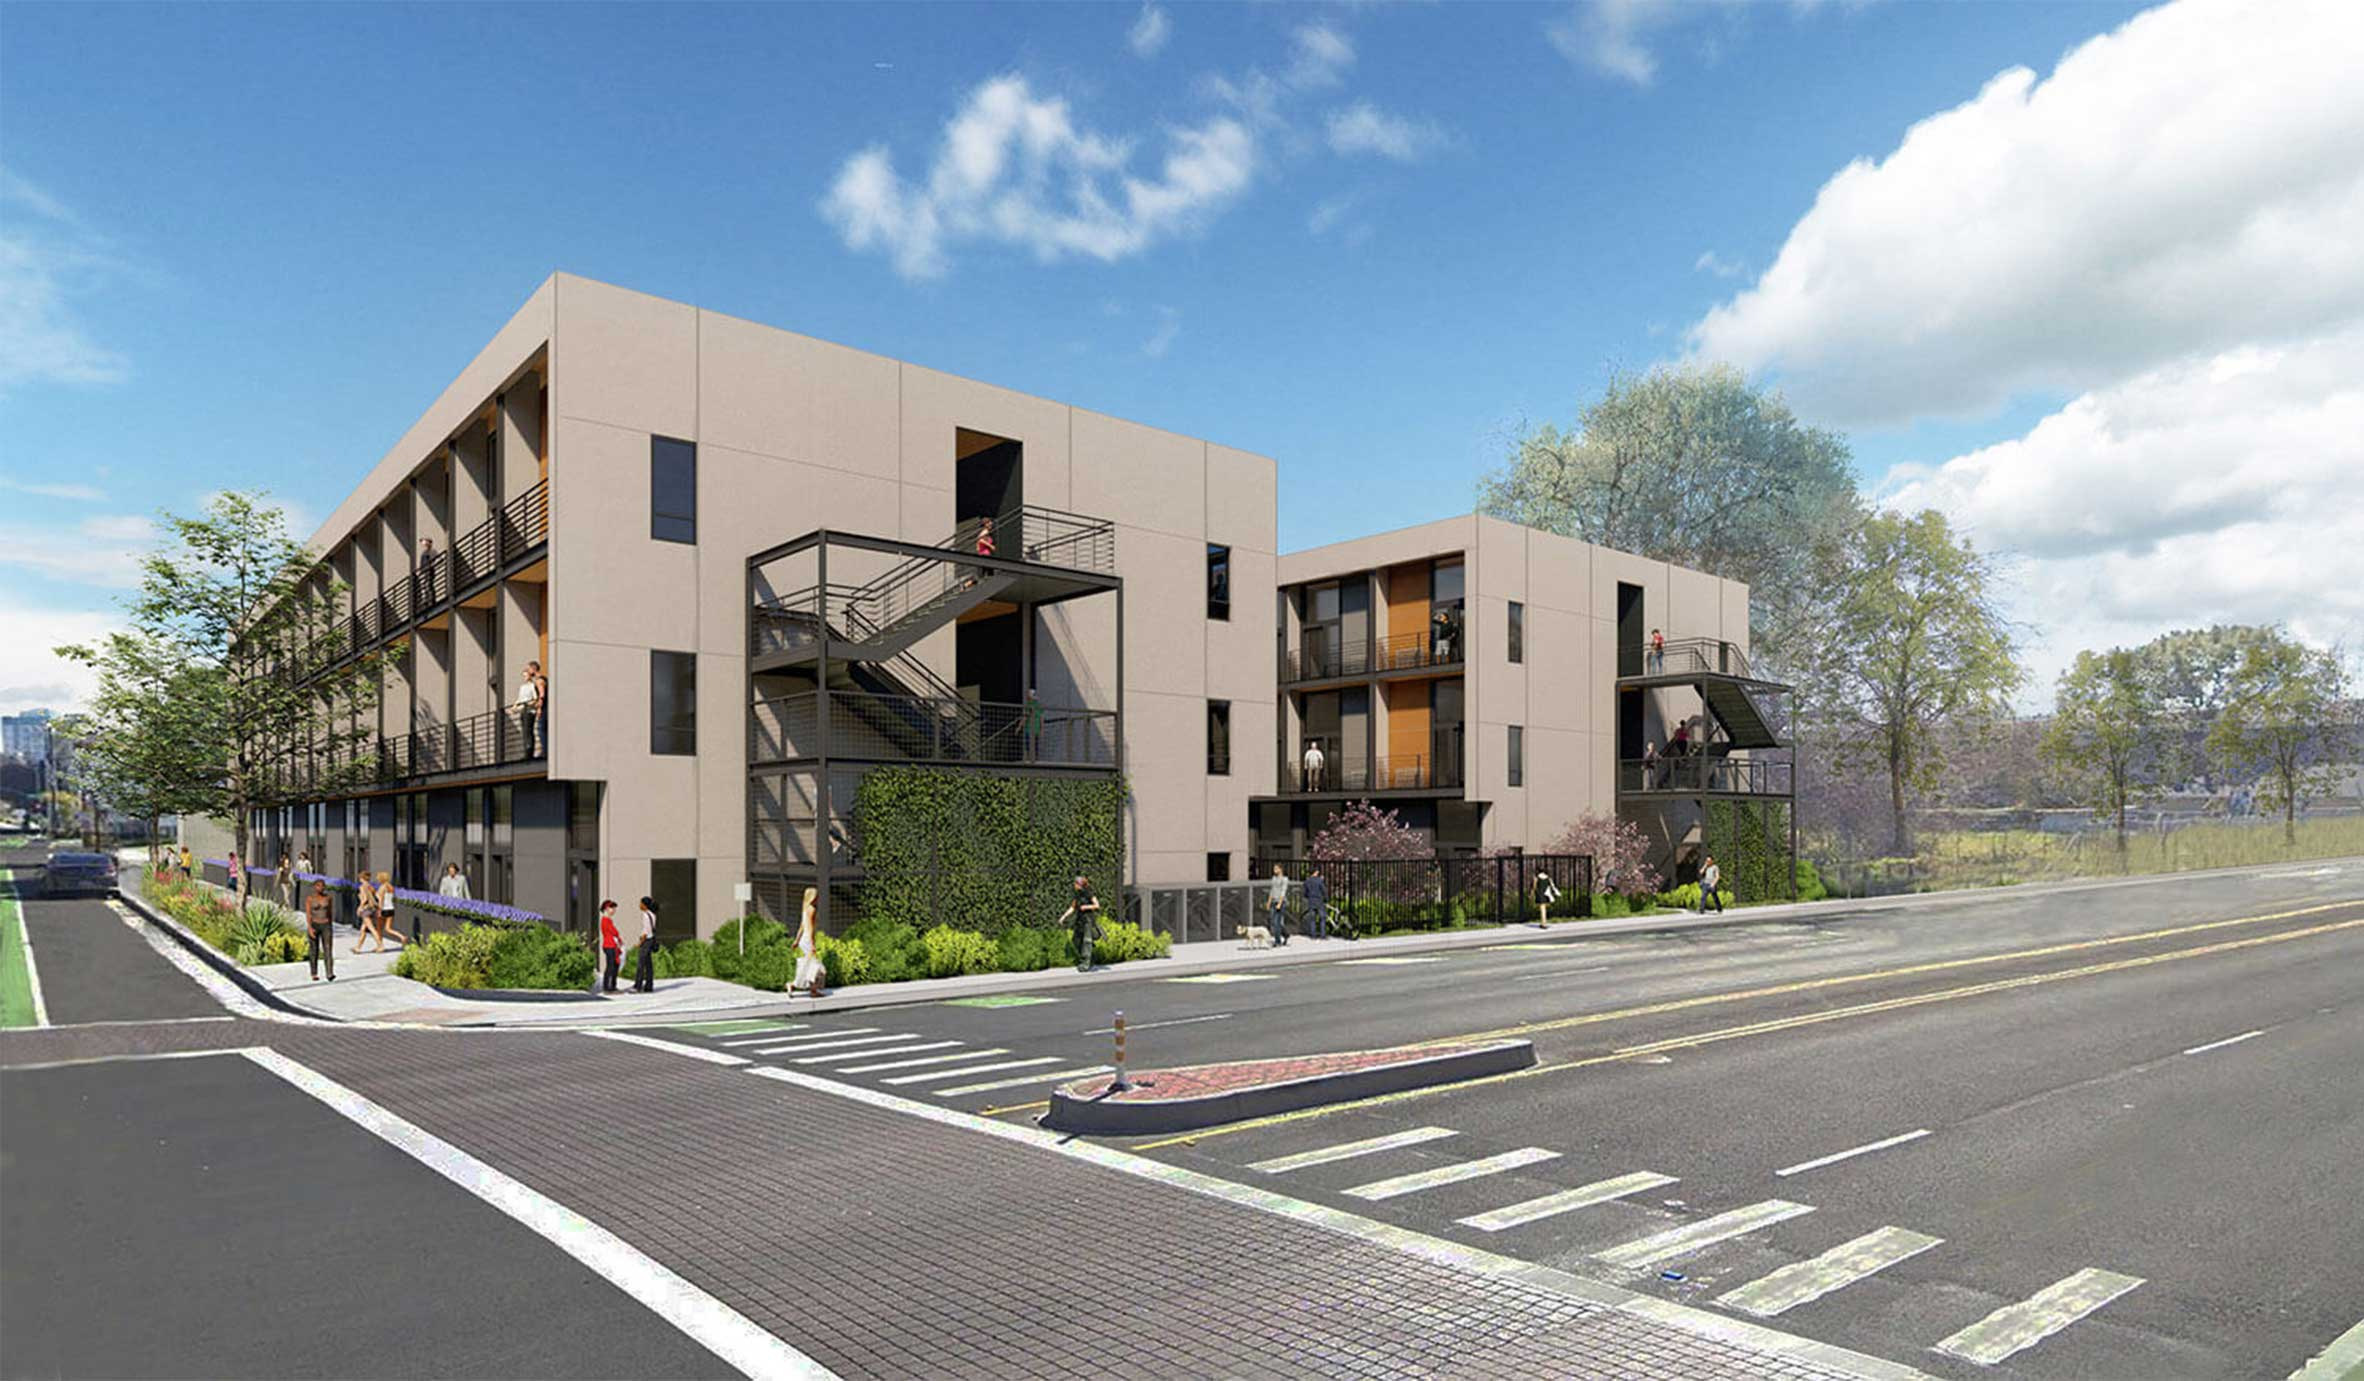 Mass Timber Apartments The Kind Project ArchitecTURAL rENDERING